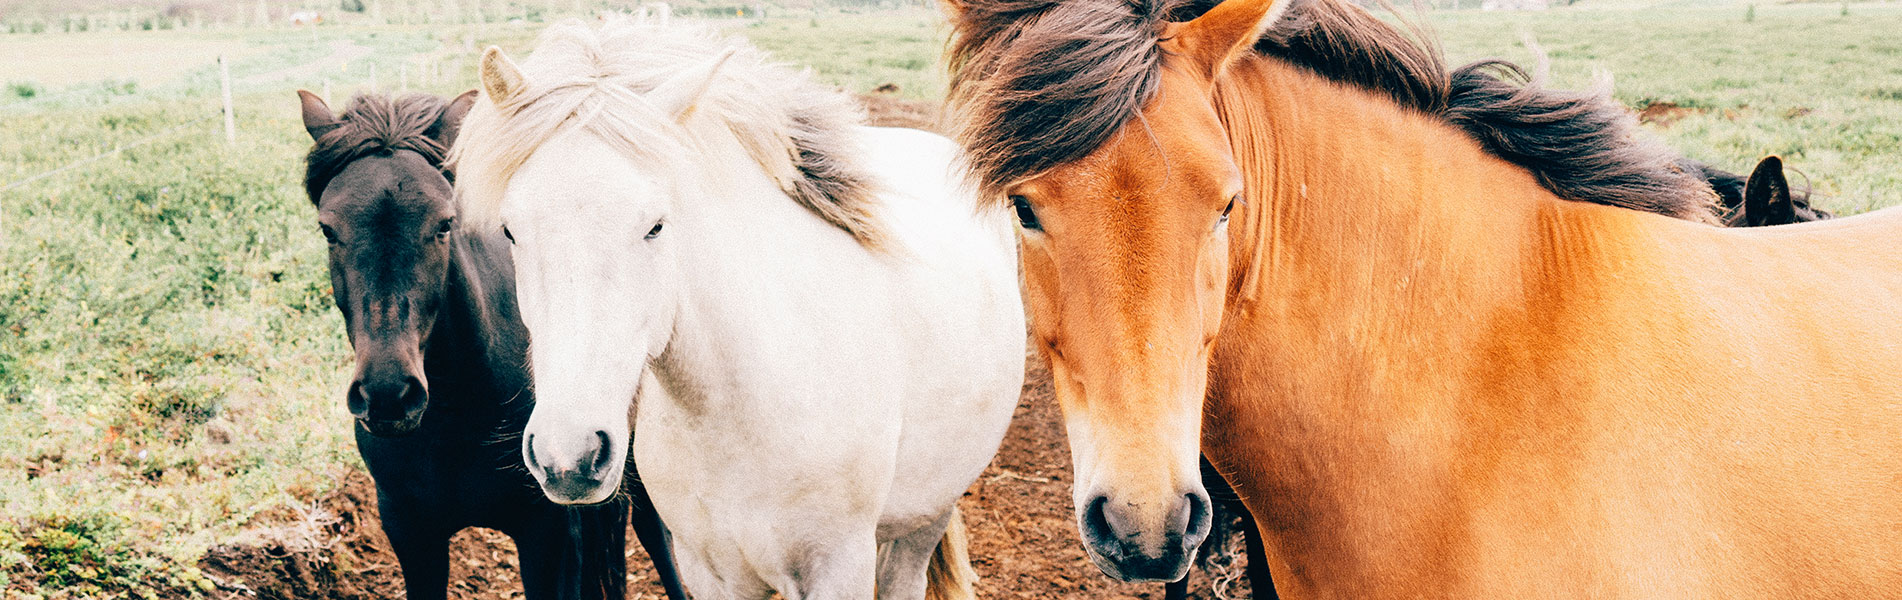 horse-feed-1920x600-1_banner